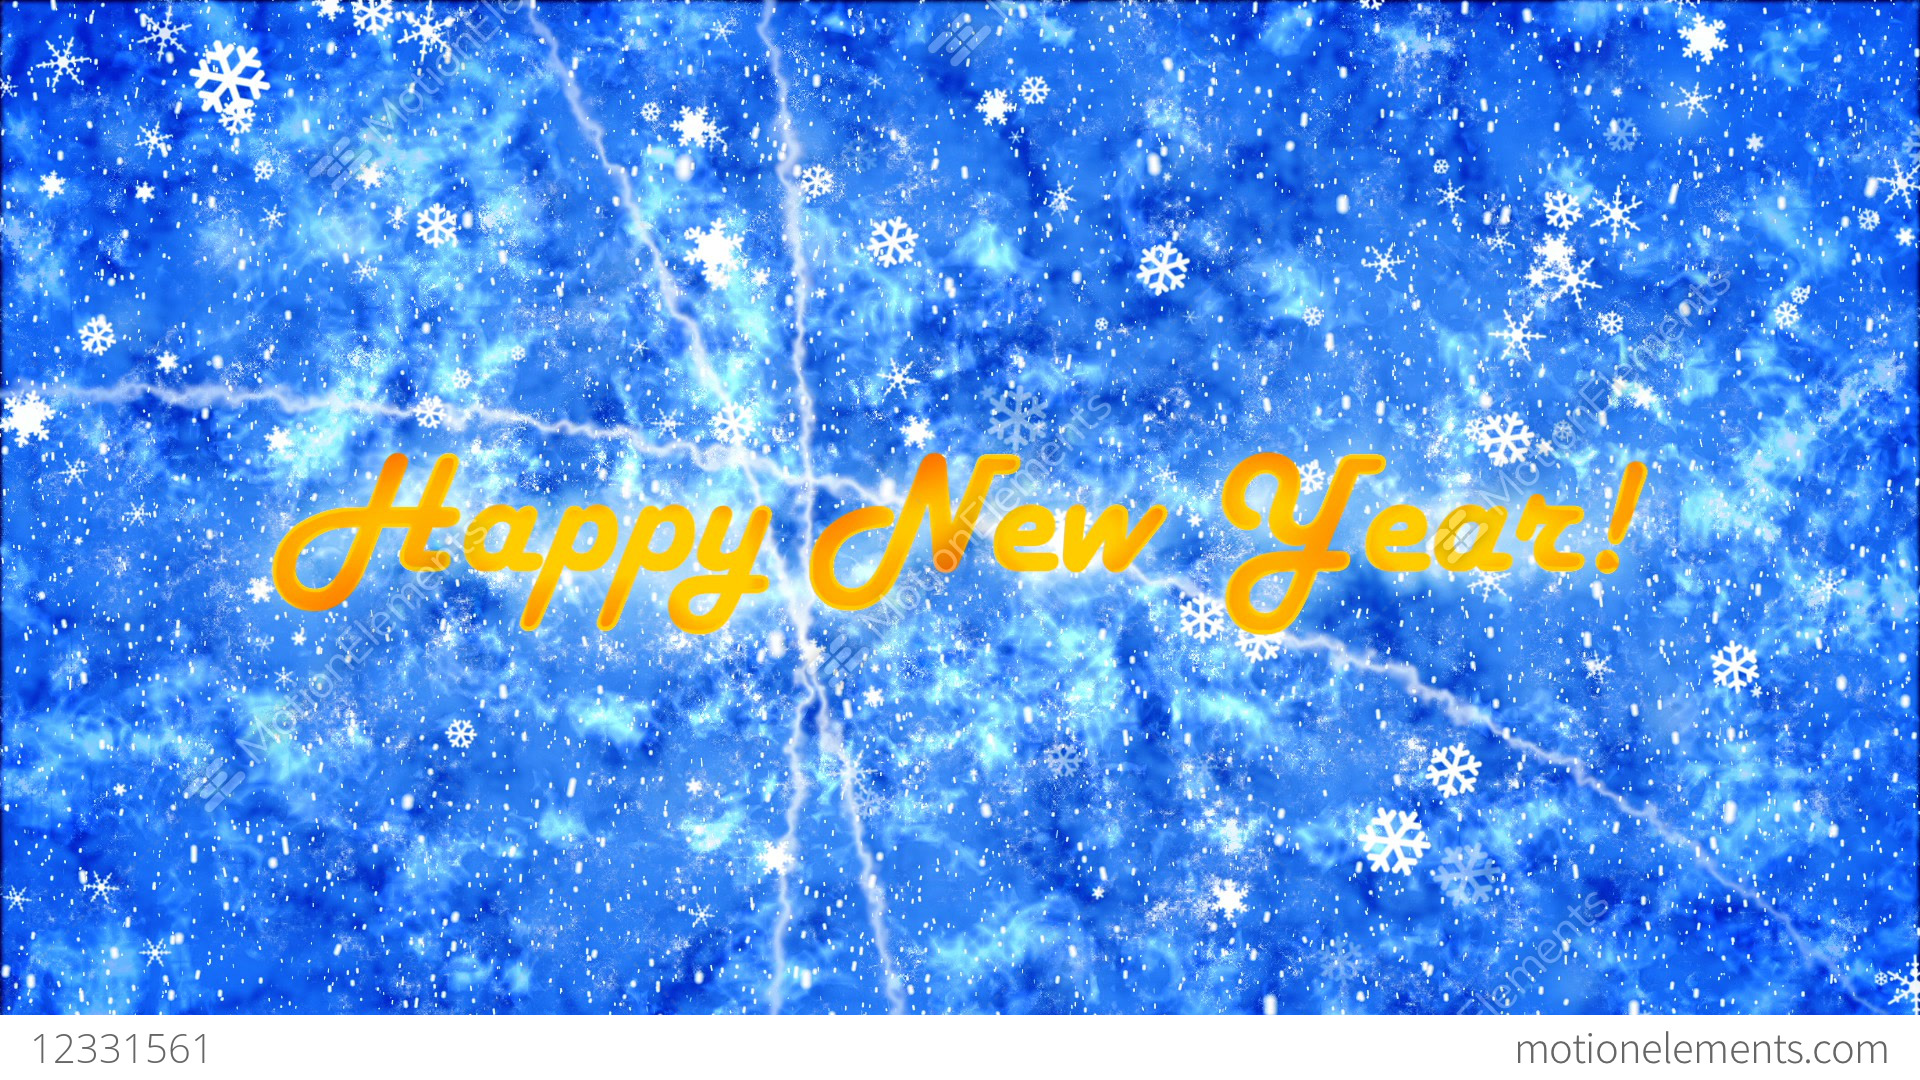 Background With New Year Greetings Stock Animation 12331561